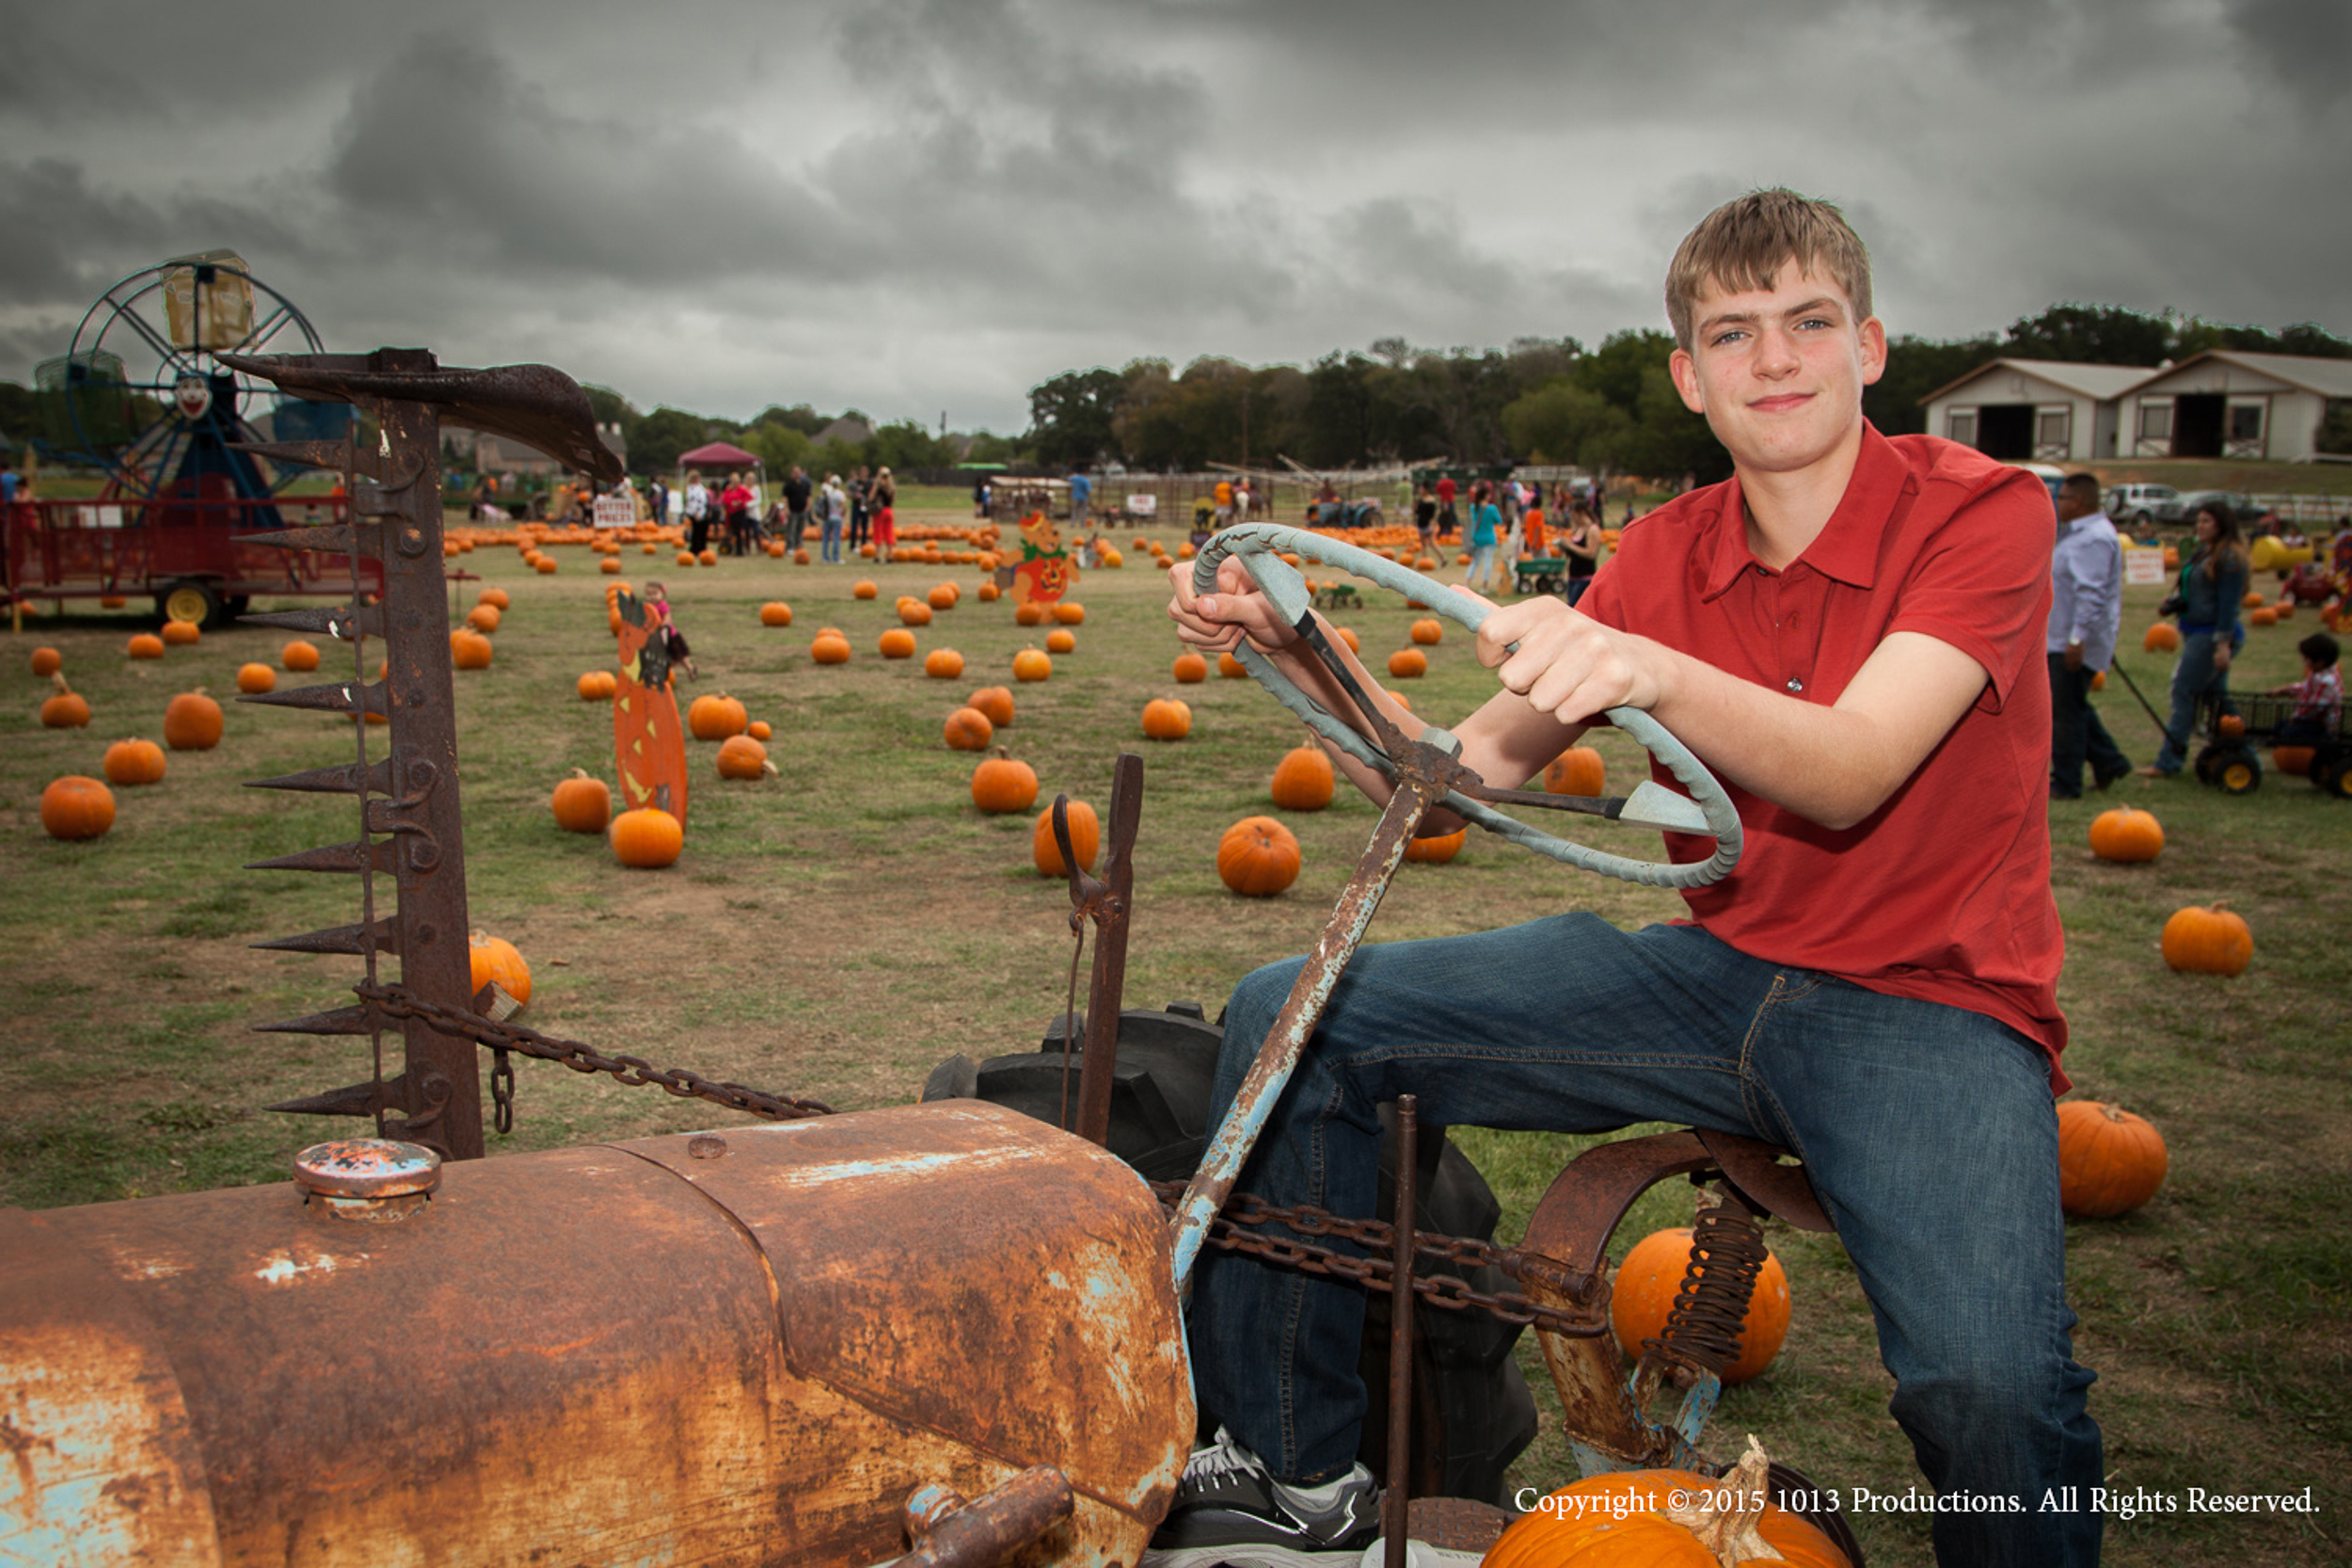 PumpkinPatch-4645_c.jpg